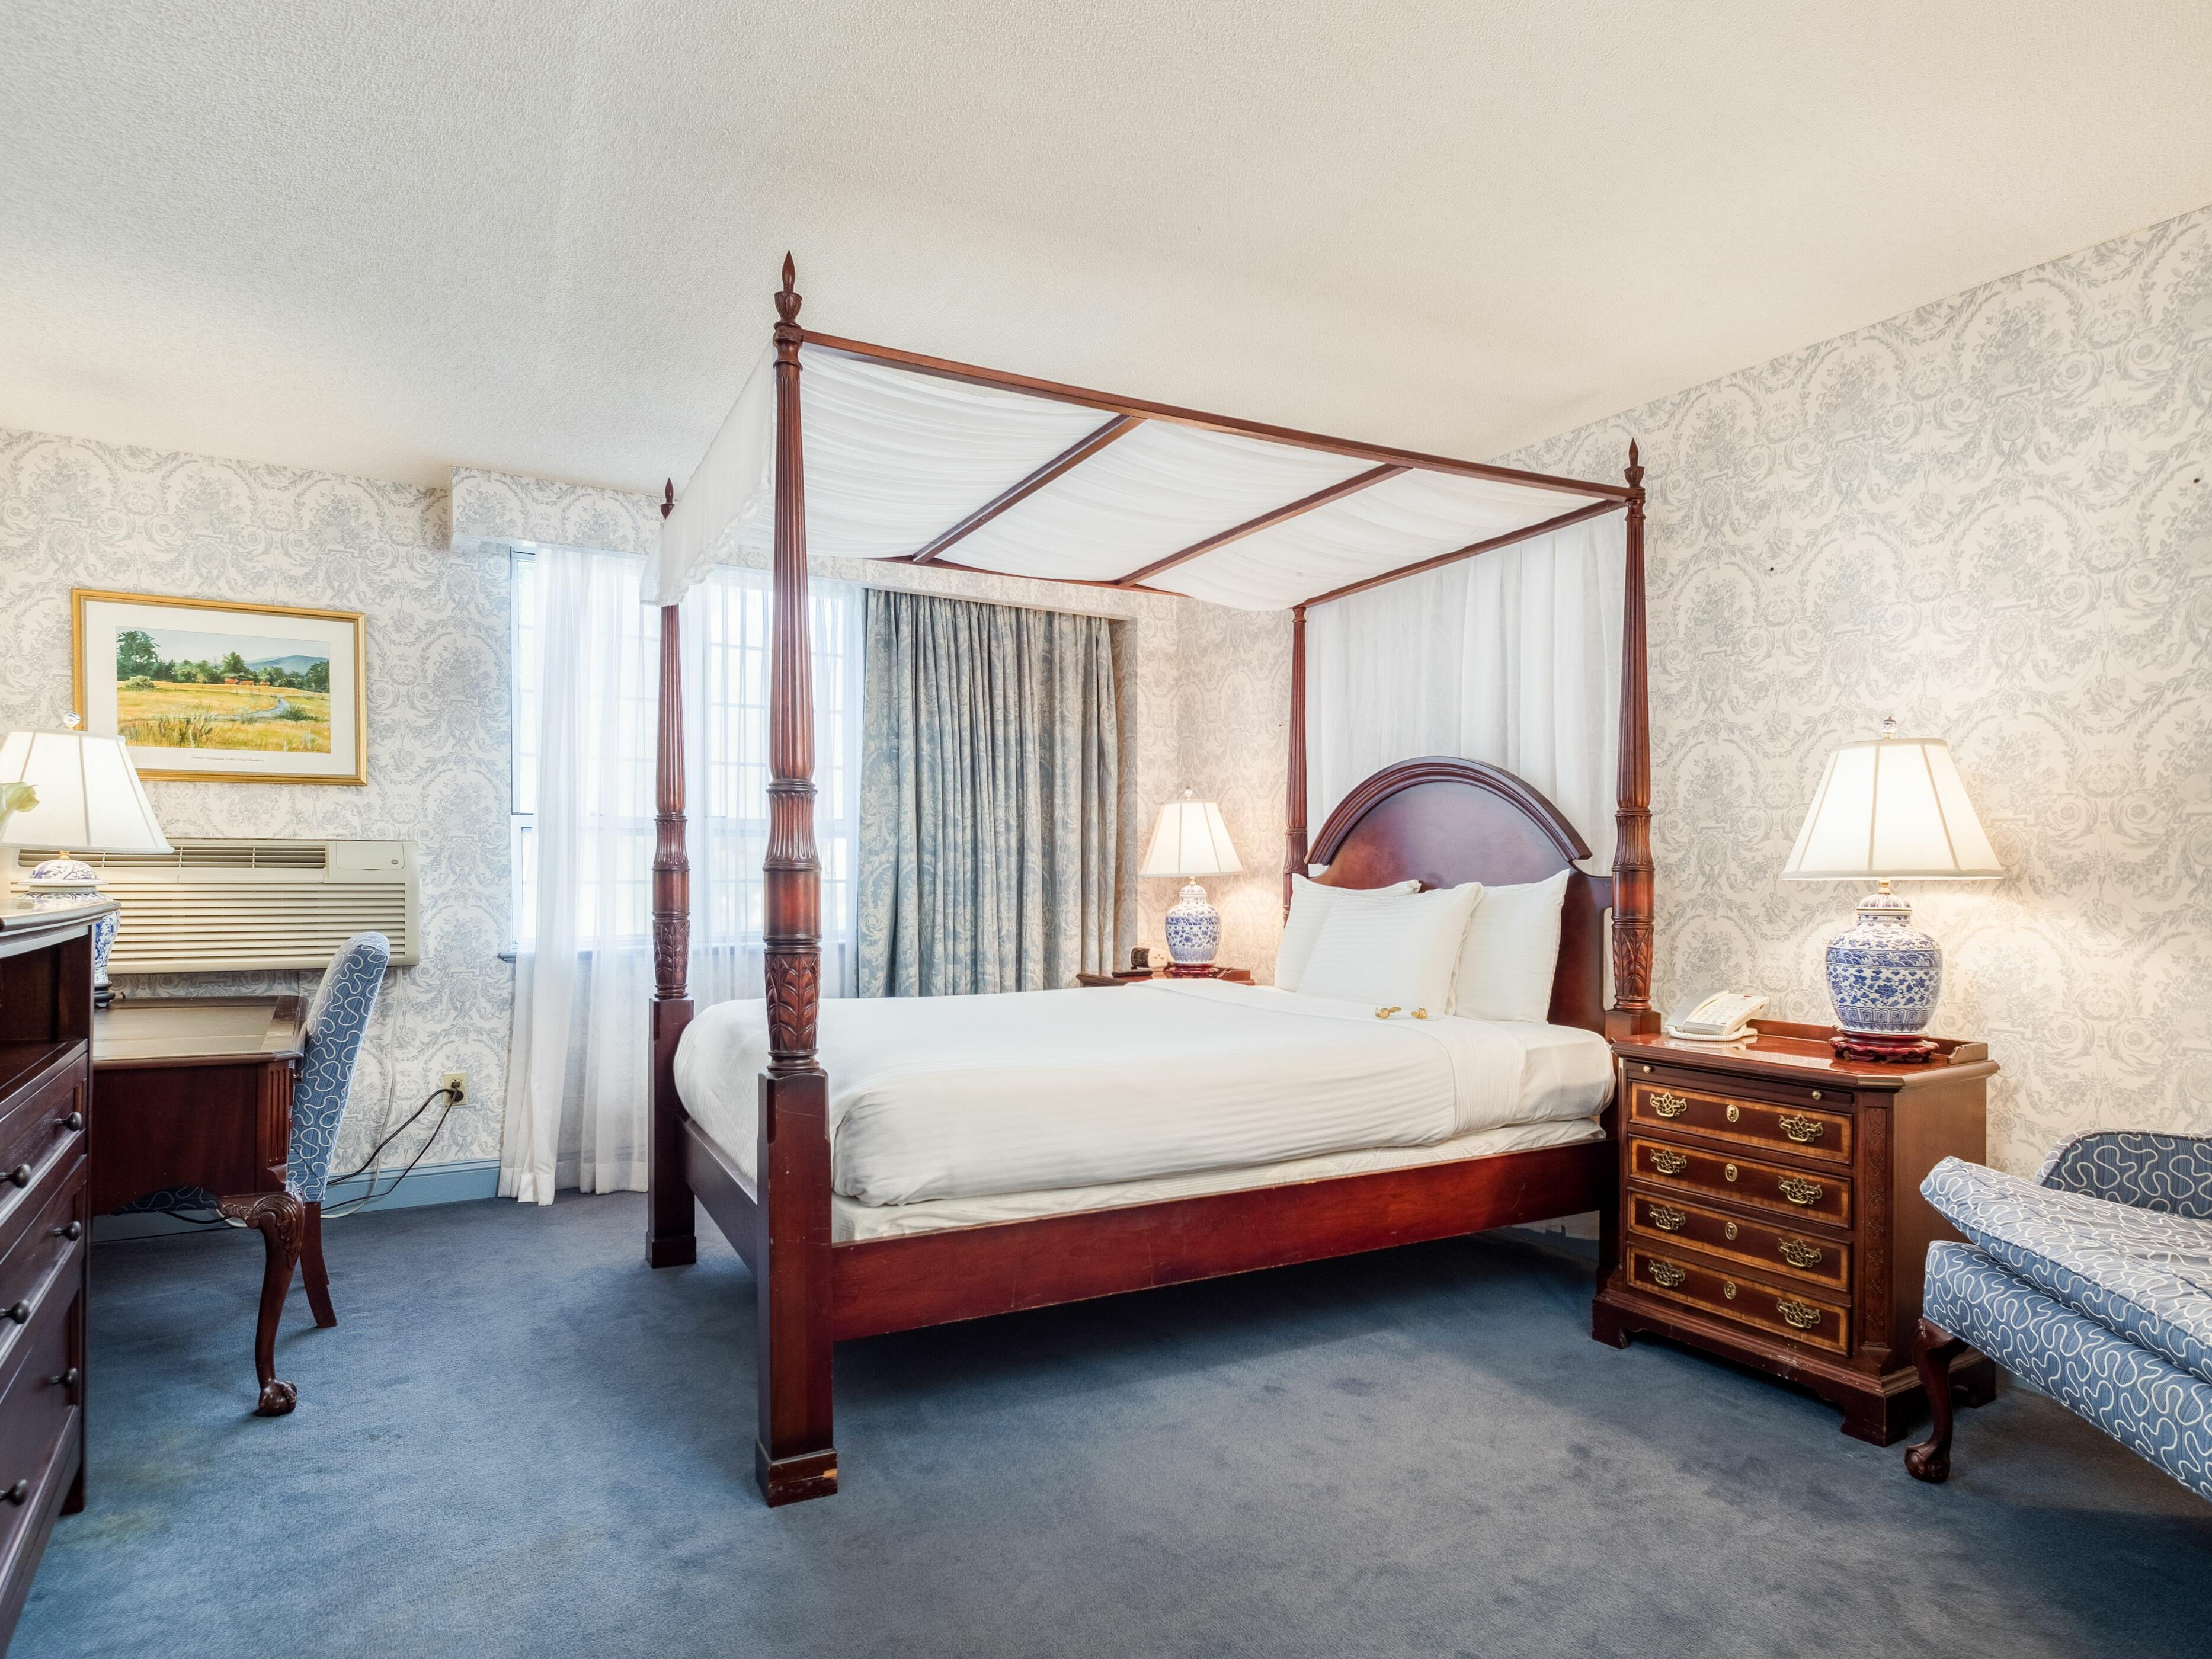 Deluxe Room with king bed at Farmington Inn and Suites